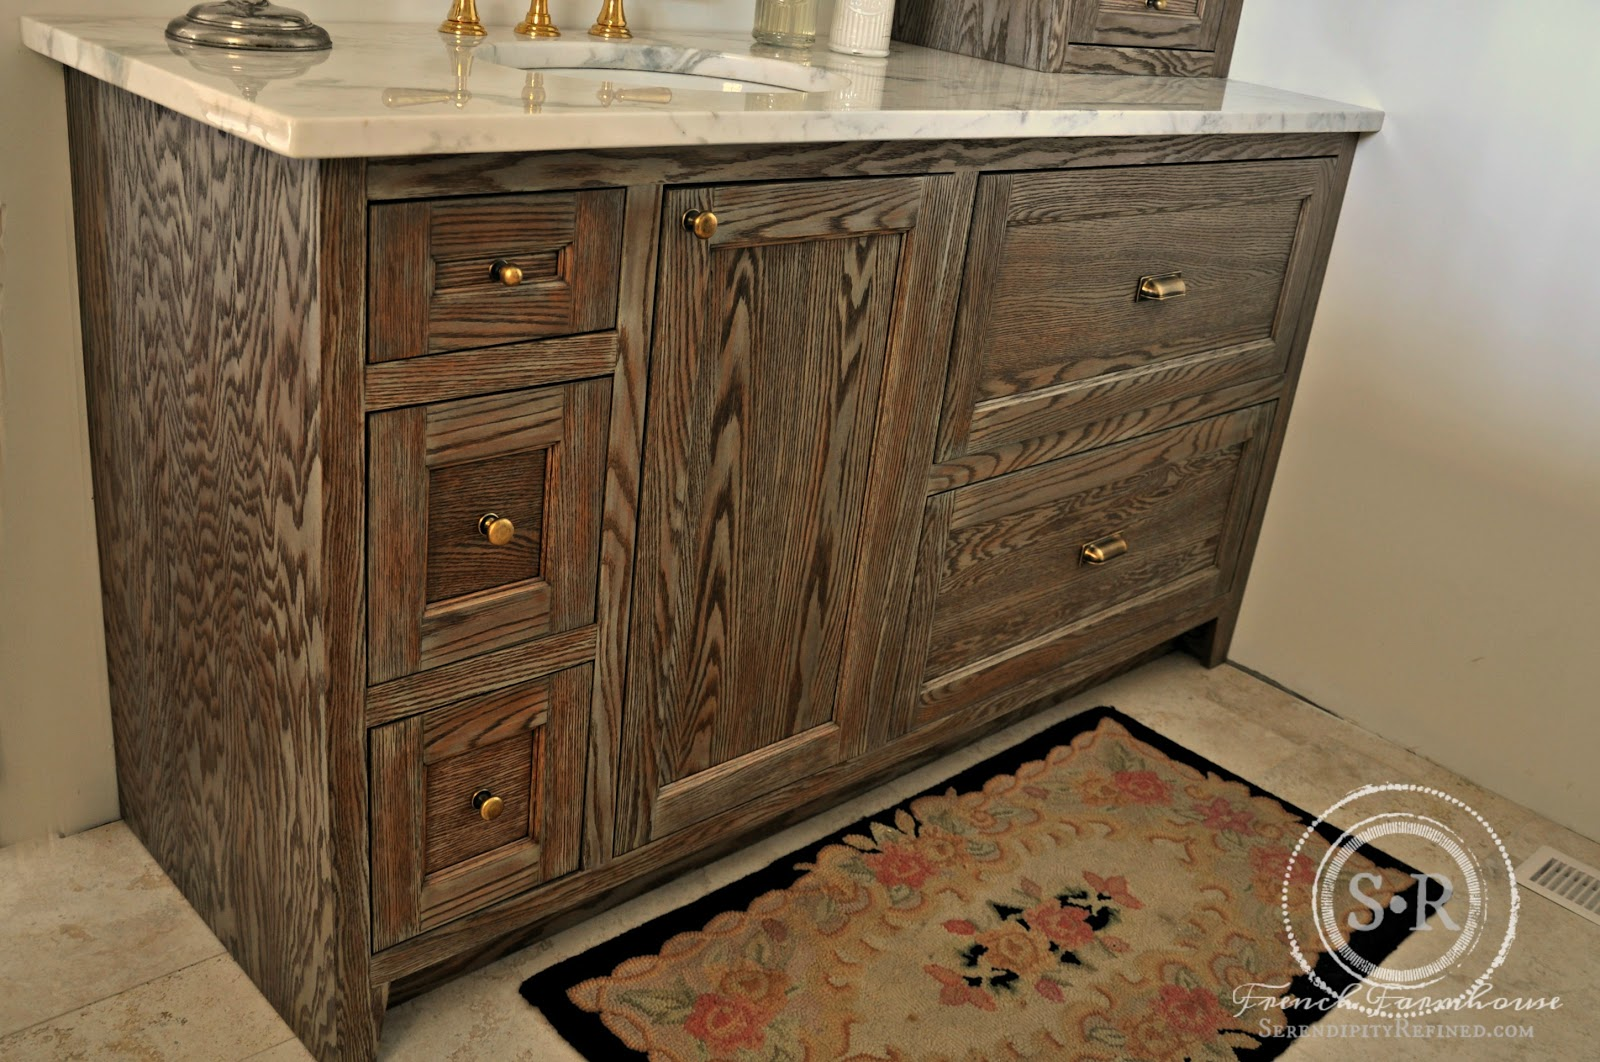 The Very First Thing That You See When You Walk Into The Room Is The  Beautiful, Wire Brushed Oak Vanity That Was Made By A Remarkable Amish  Cabinet Maker ...